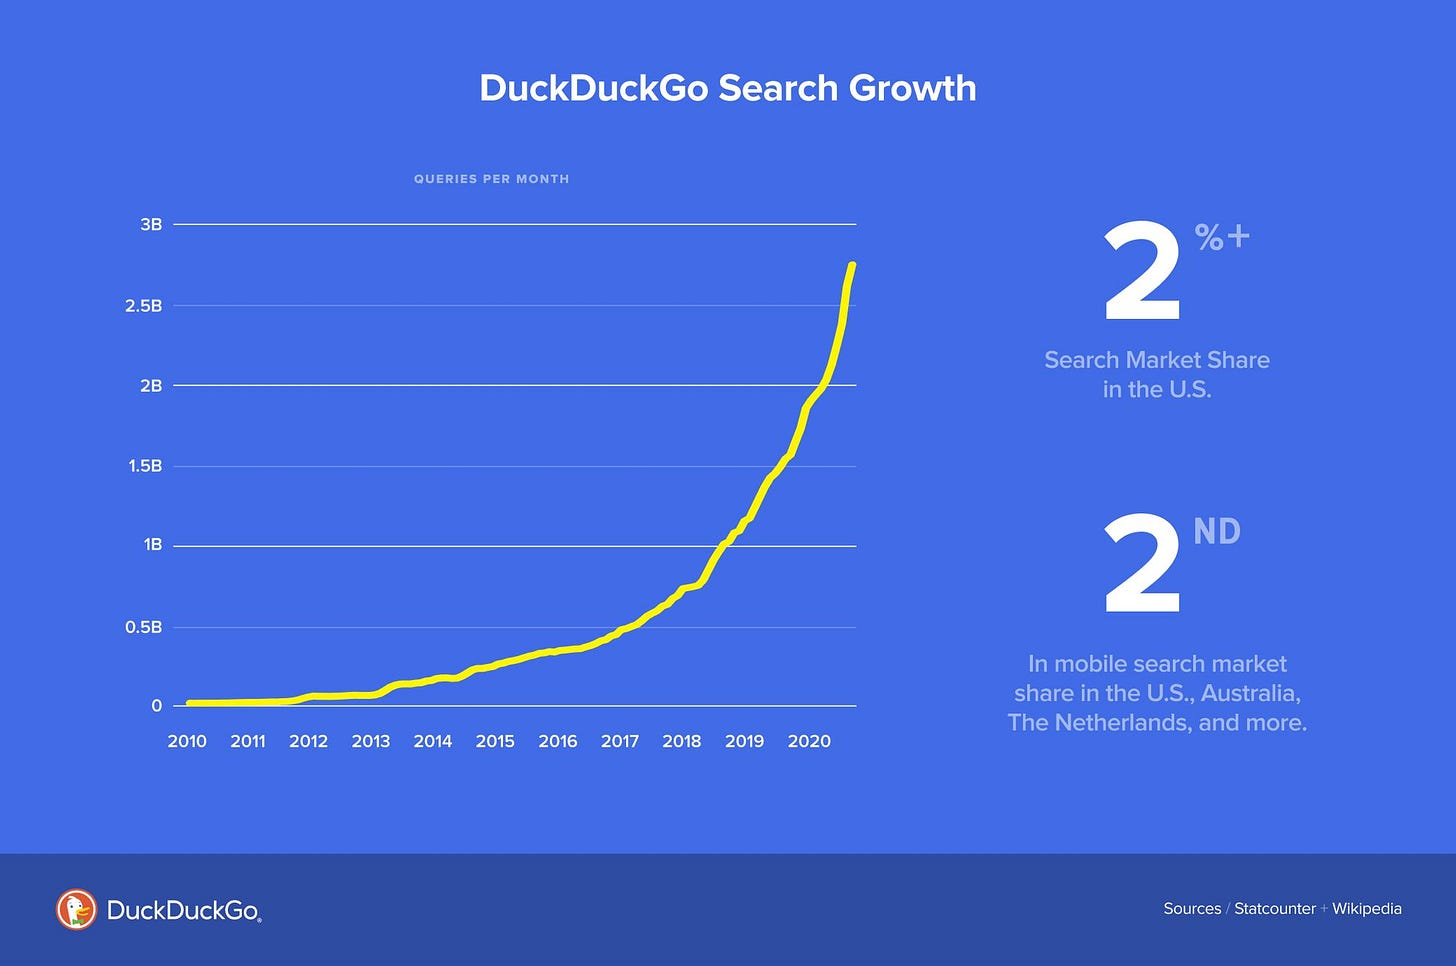 Chart showing upwards growth curve of DuckDuckGo Search traffic.